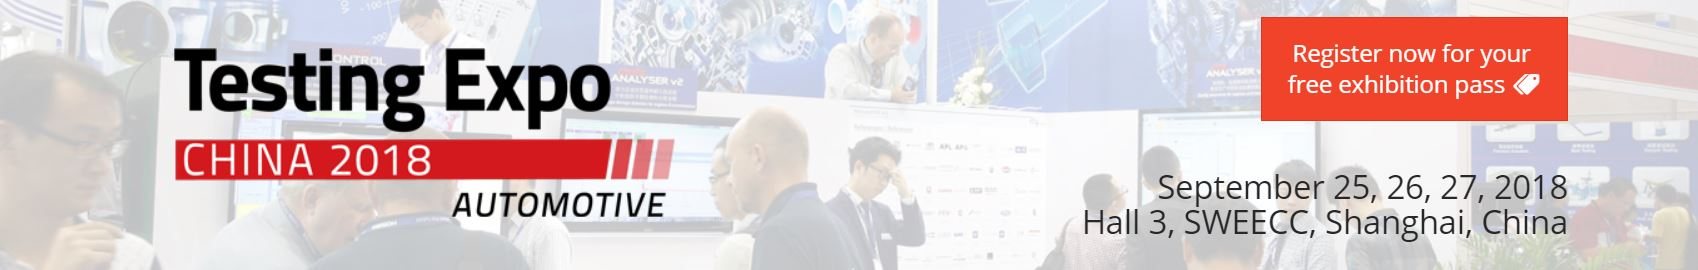 Automotive Testing China 2018